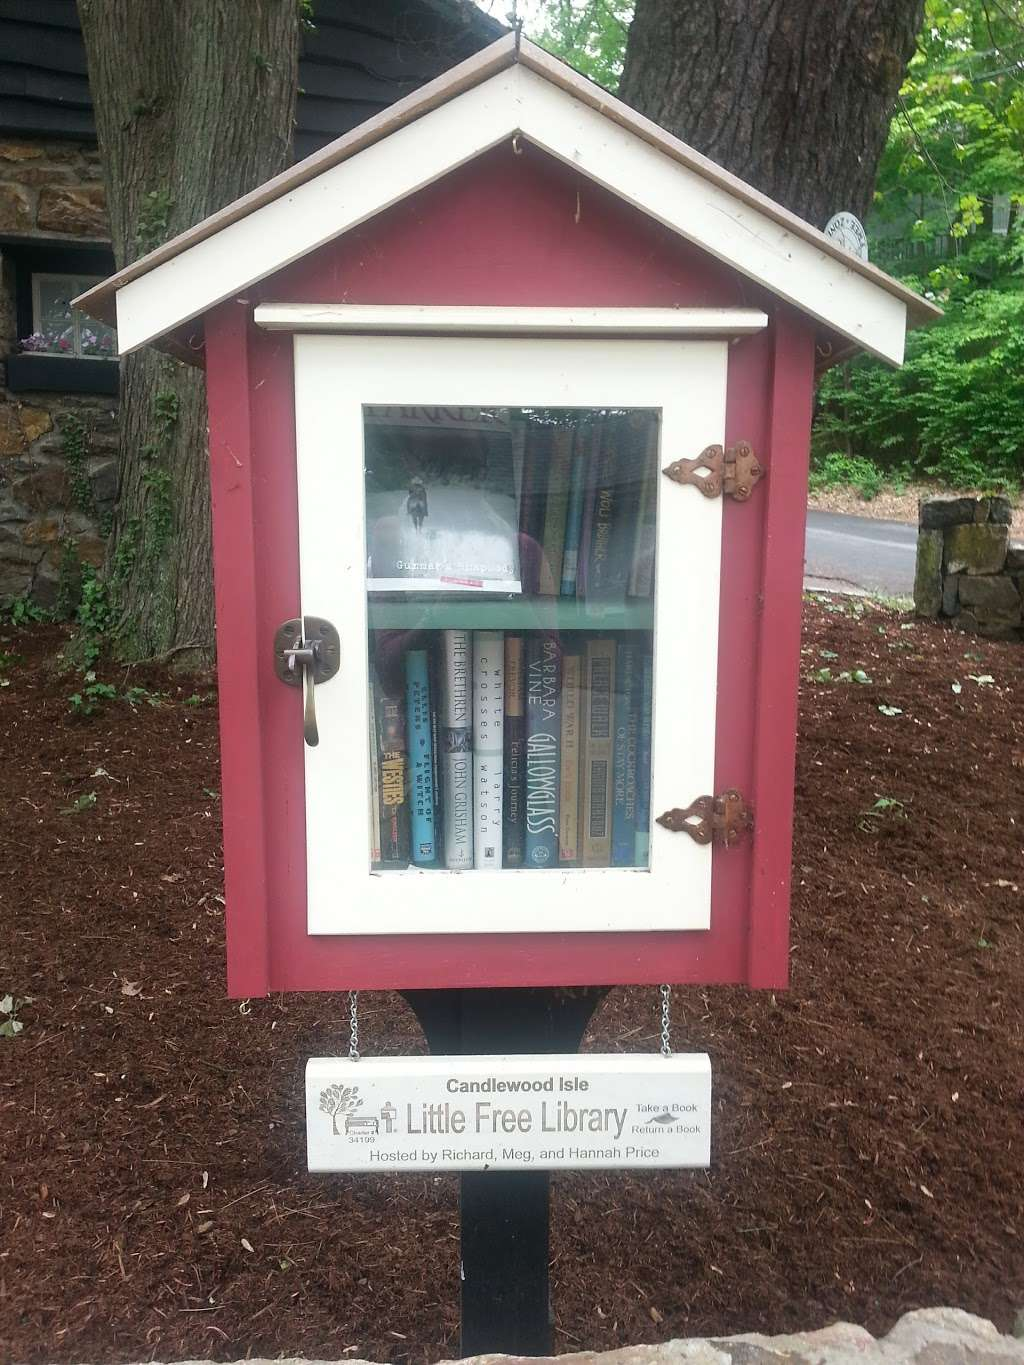 Candlewood Isle Little Free Library - library  | Photo 1 of 2 | Address: 37 Lake Dr S, New Fairfield, CT 06812, USA